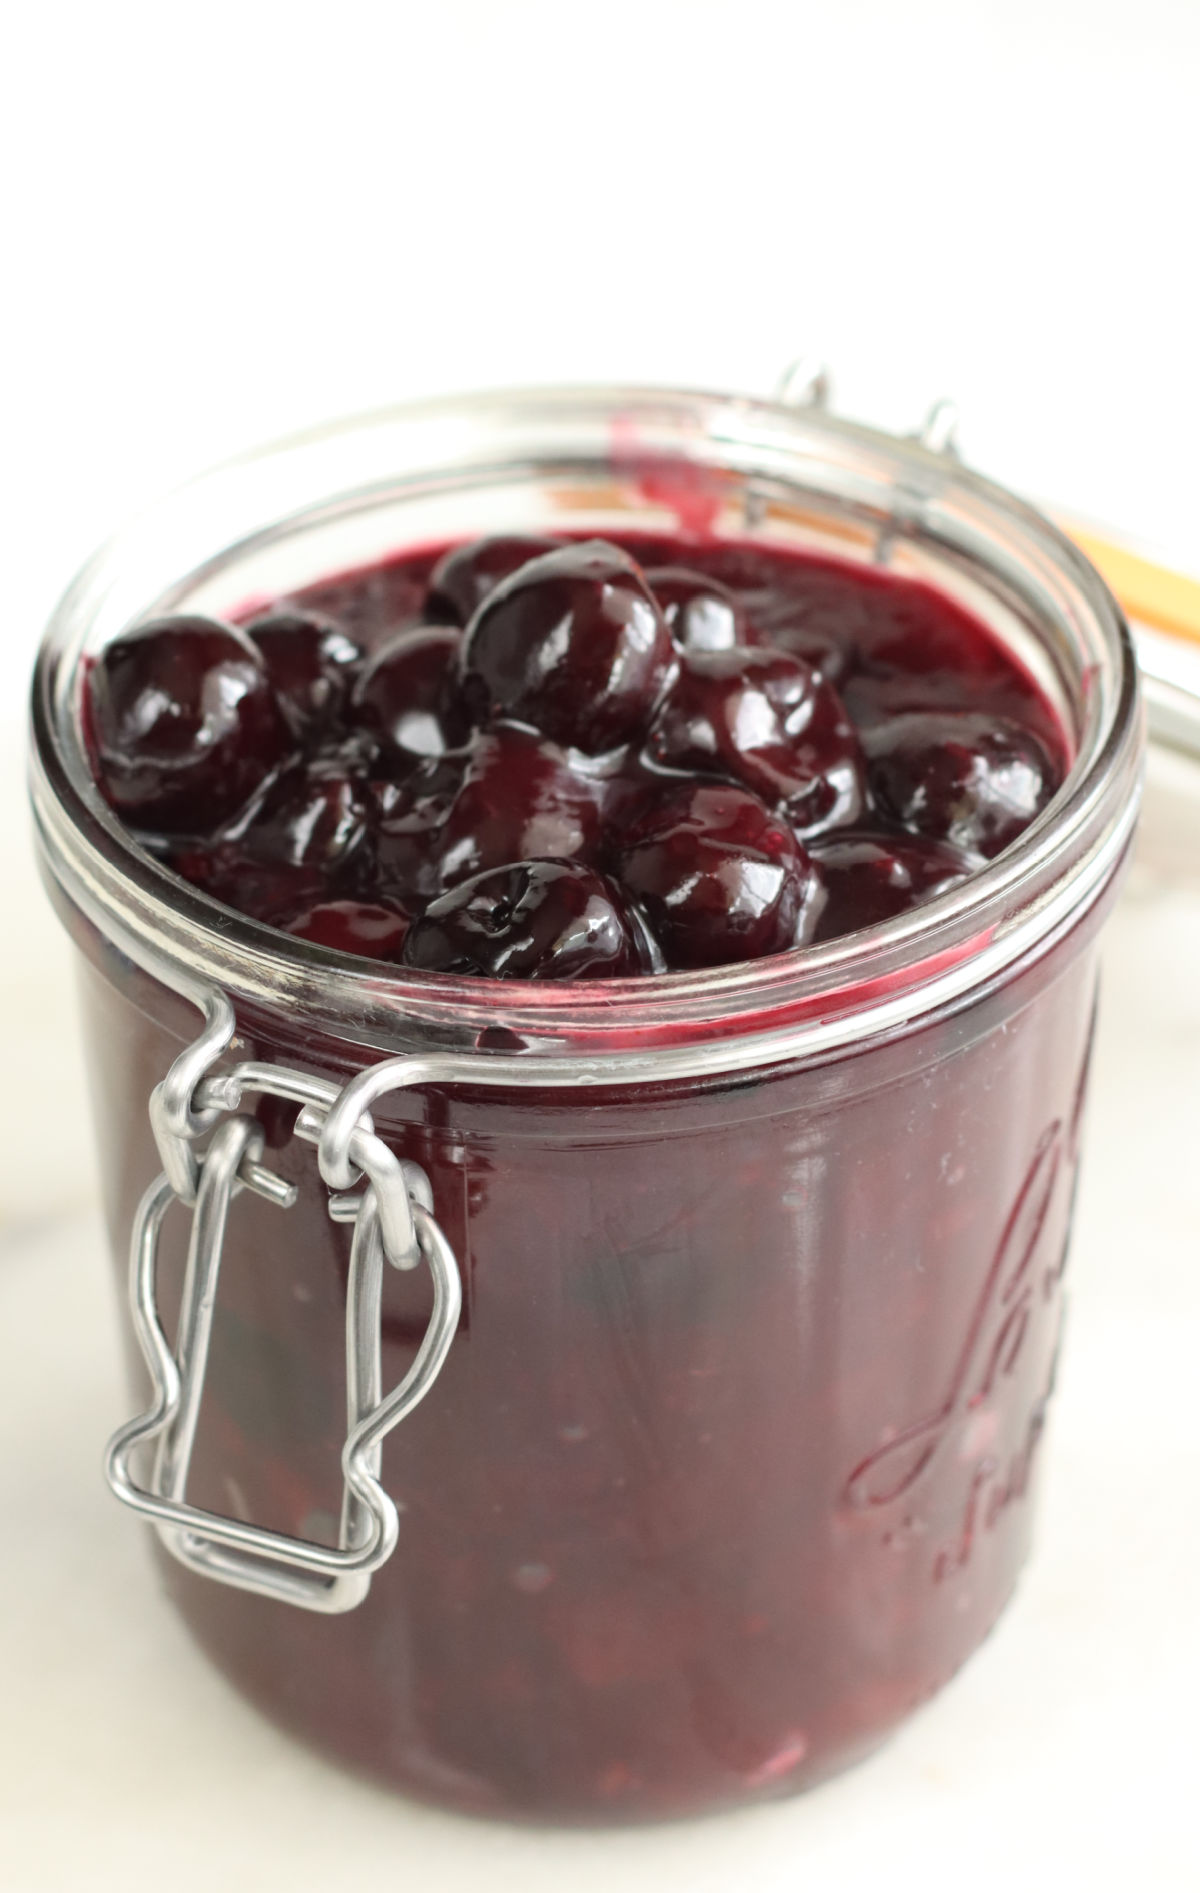 Glass jar of cherry pie filling on white marble.